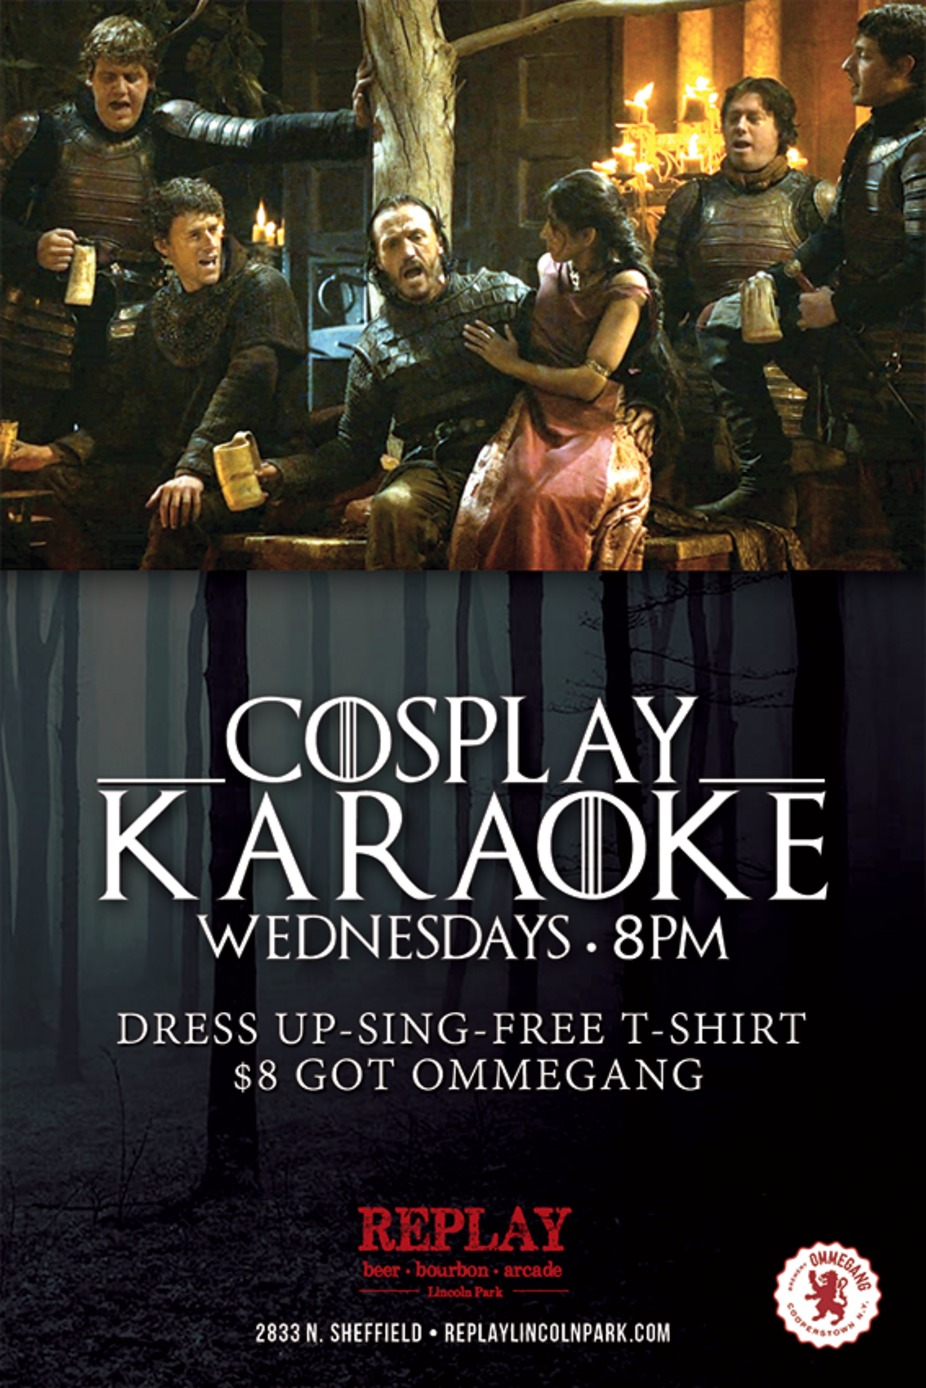 Cosplay Karaoke event photo